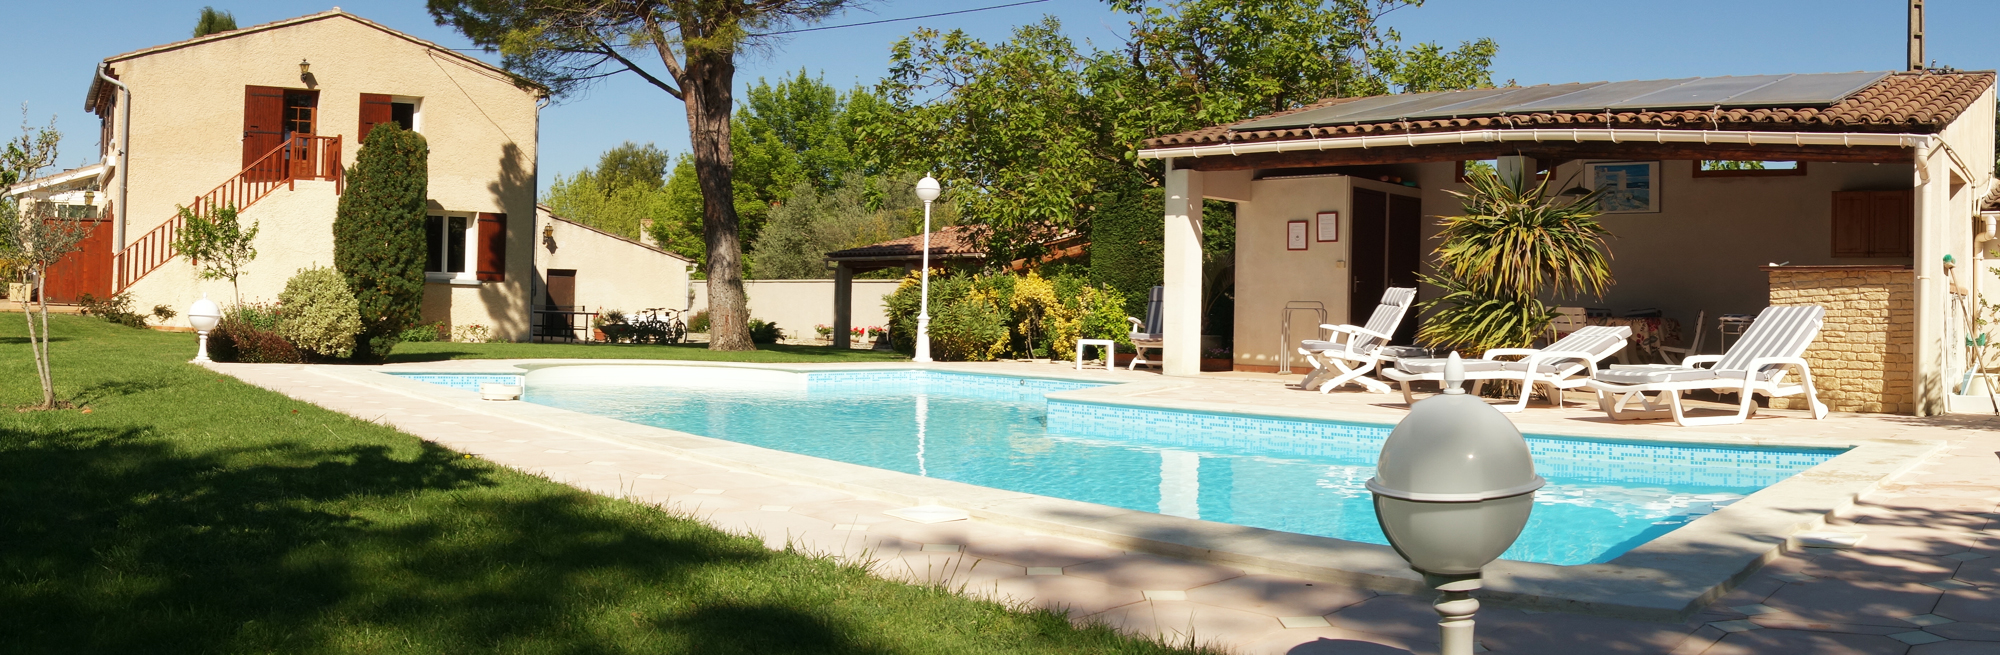 Seasonal rental in Provence